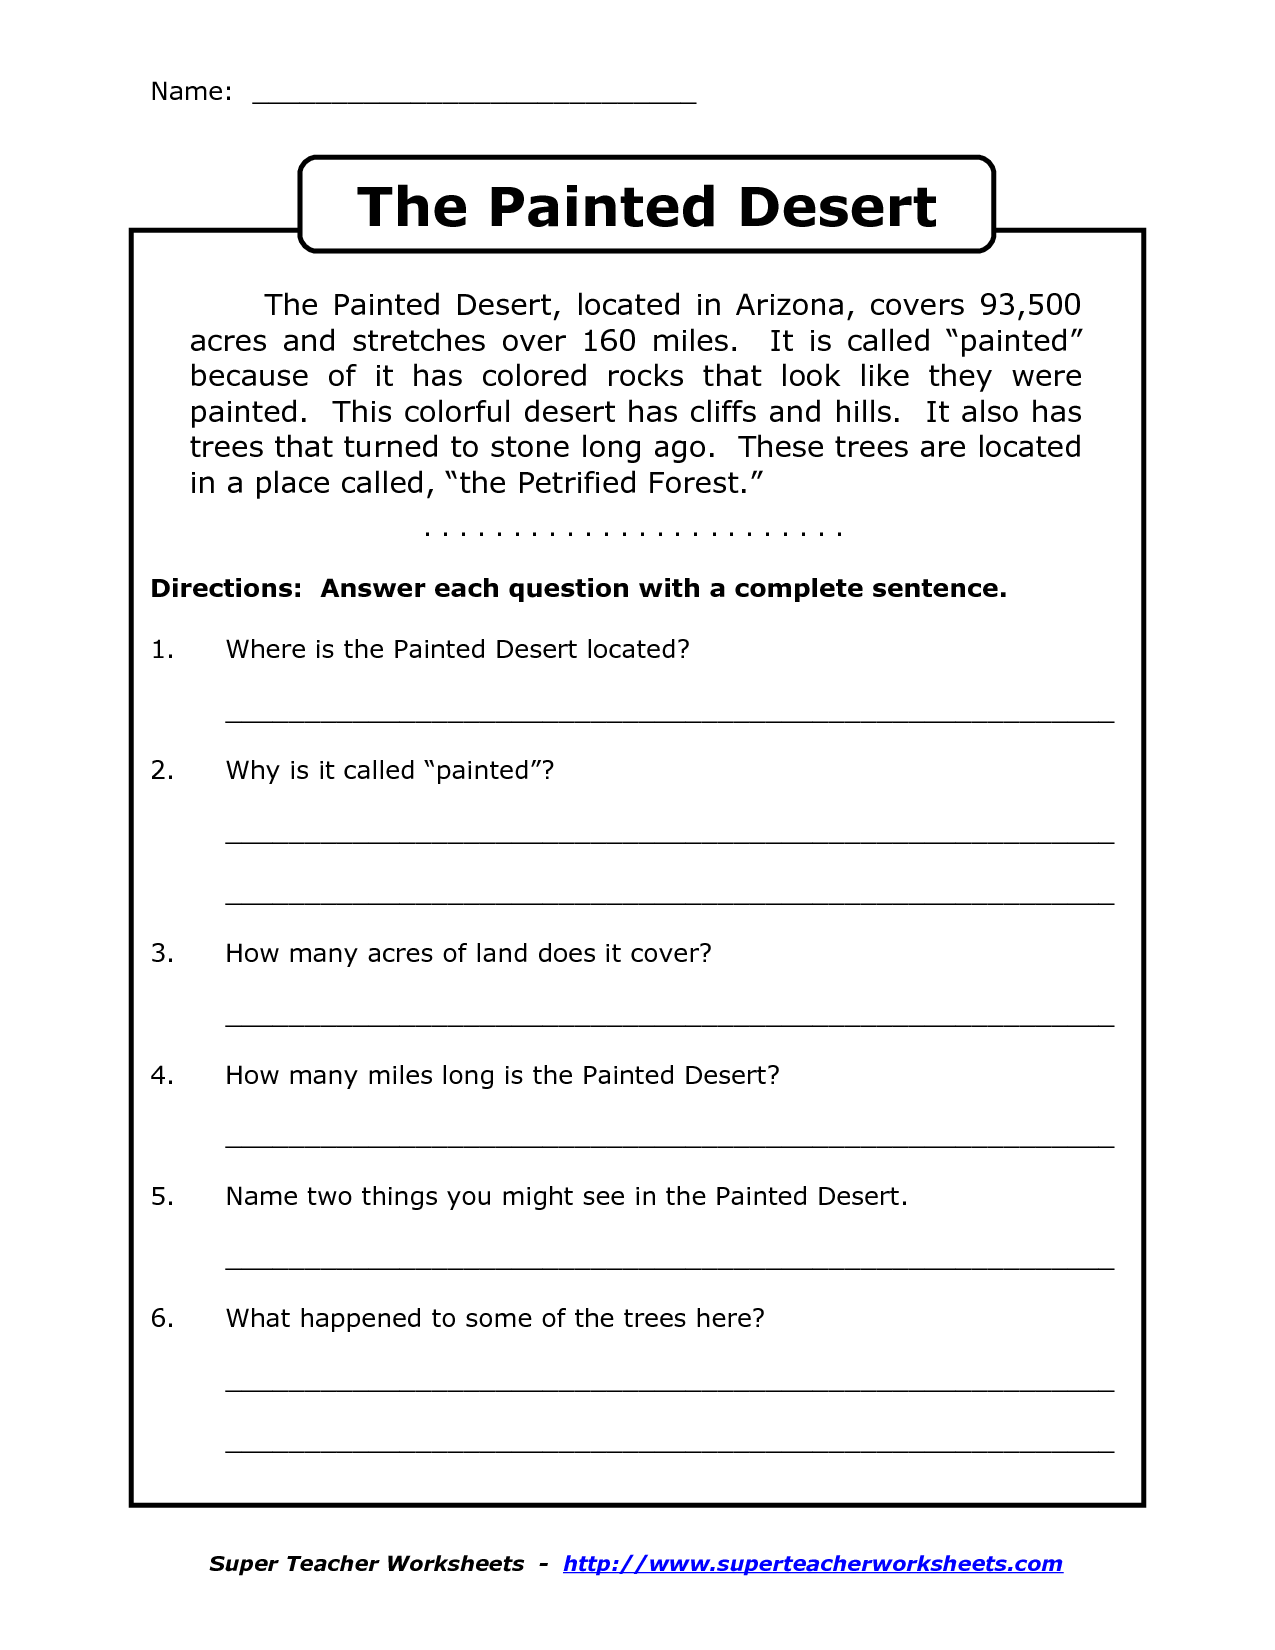 worksheet 4th Grade Reading Passages reading worksheets for 4th grade comprehension 3 name the painted desert